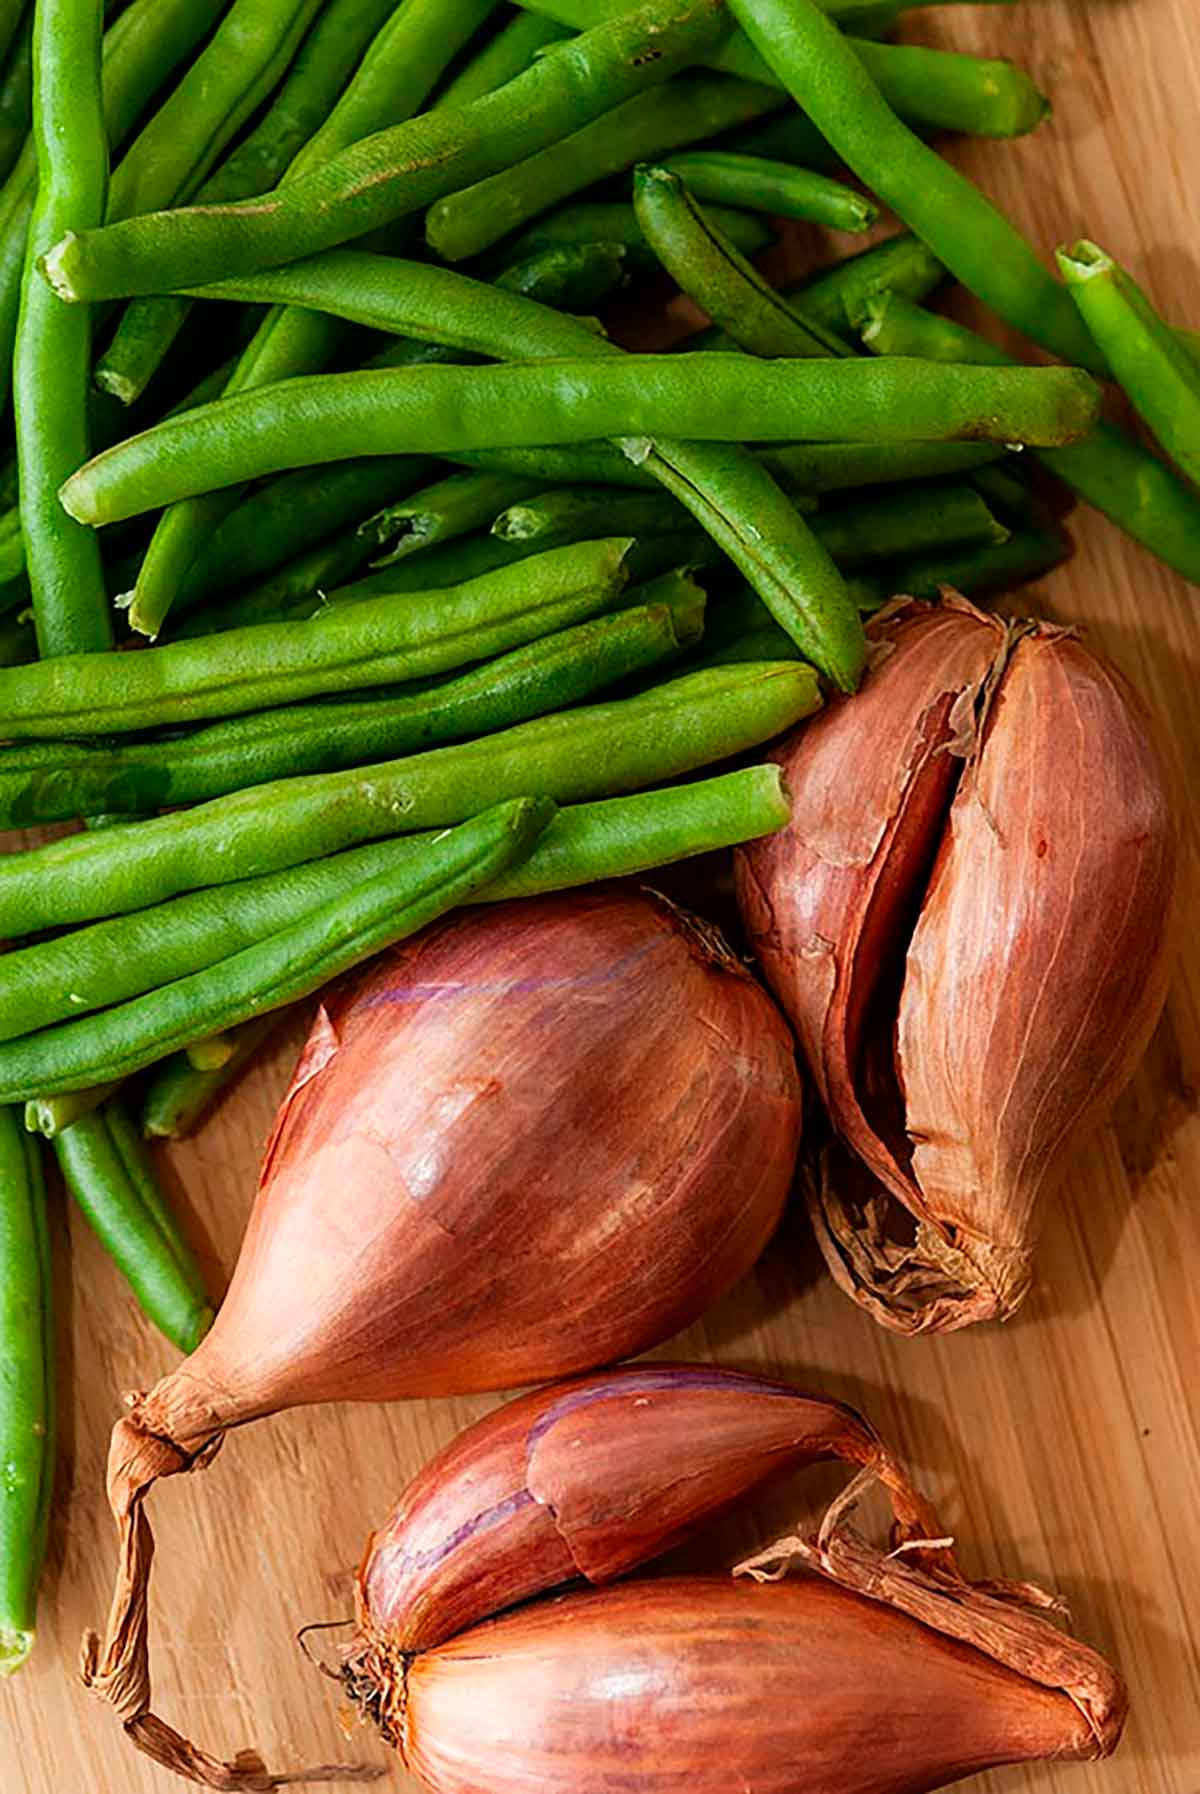 Uncooked shallots and green beans on a cutting board.